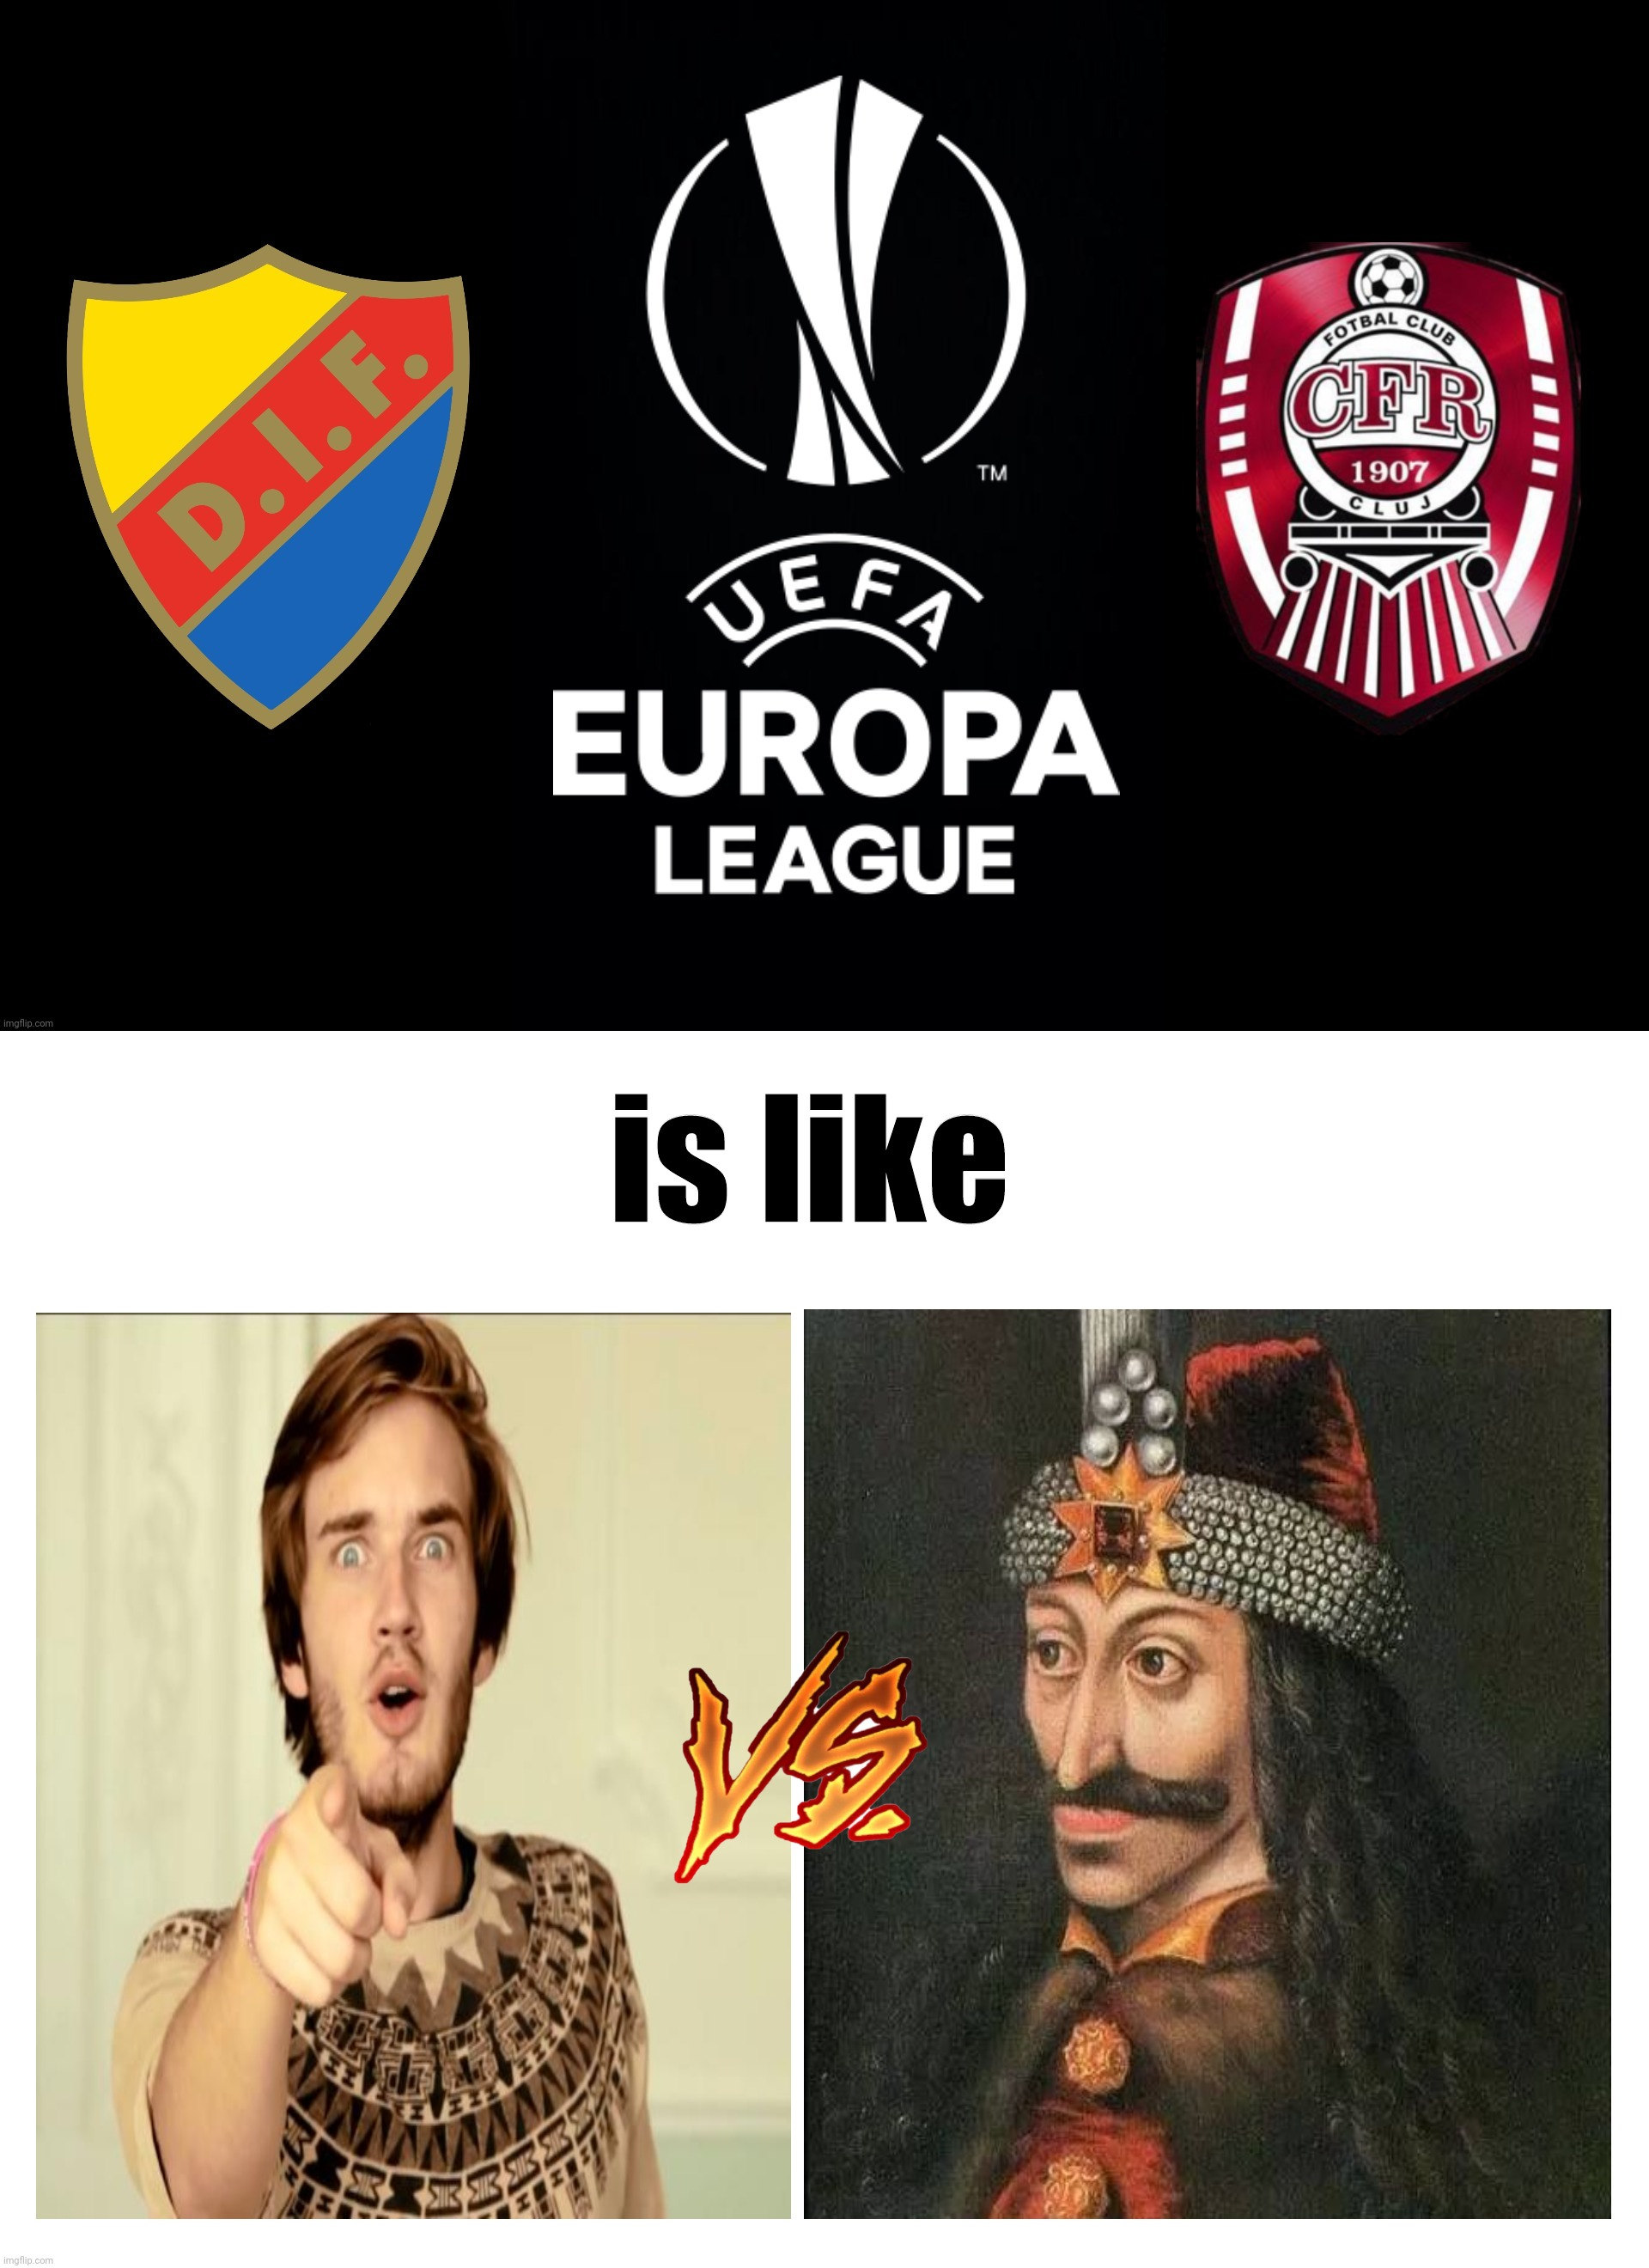 Djurgarden vs CLUJ: the Movie - Coming 24 September... |  is like | image tagged in memes,futbol,europa league,pewdiepie,vlad,cfr cluj | made w/ Imgflip meme maker